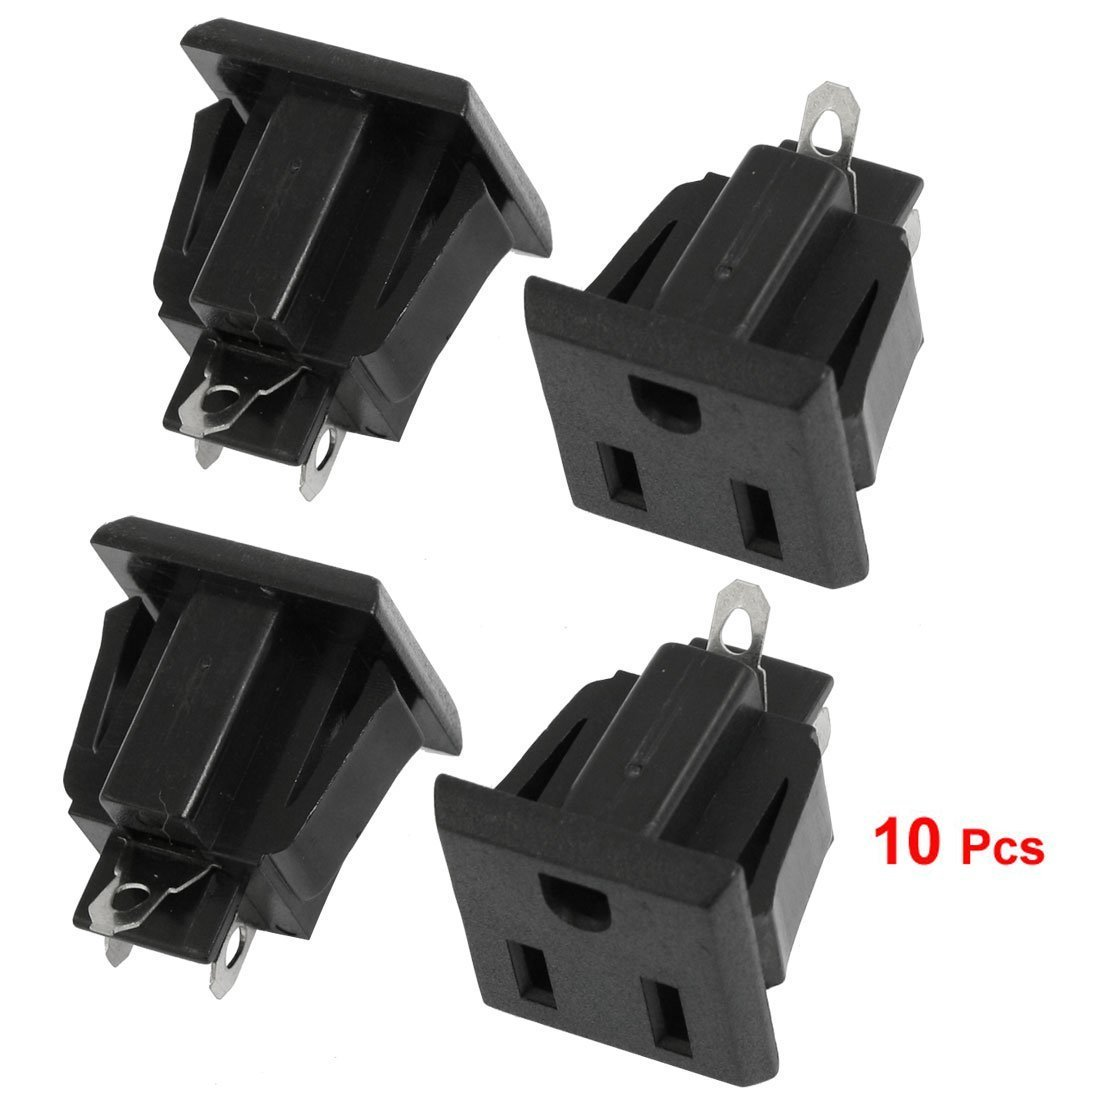 10 Pcs US 3 Pins Power Socket Plug Black AC 125V 15A Cipon HM-10412